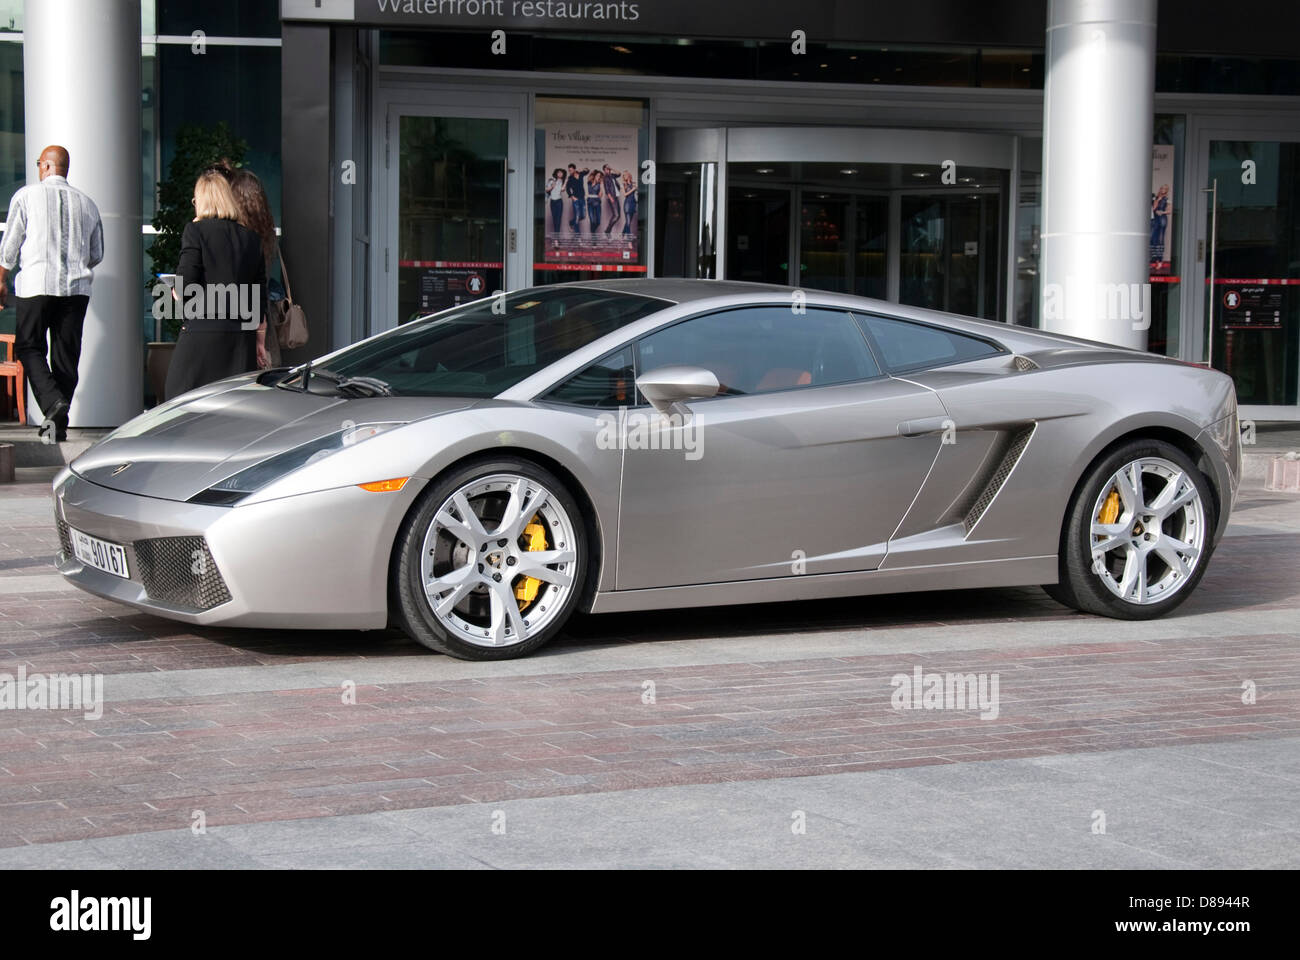 Lamborghini Silver Stock Photos Lamborghini Silver Stock Images